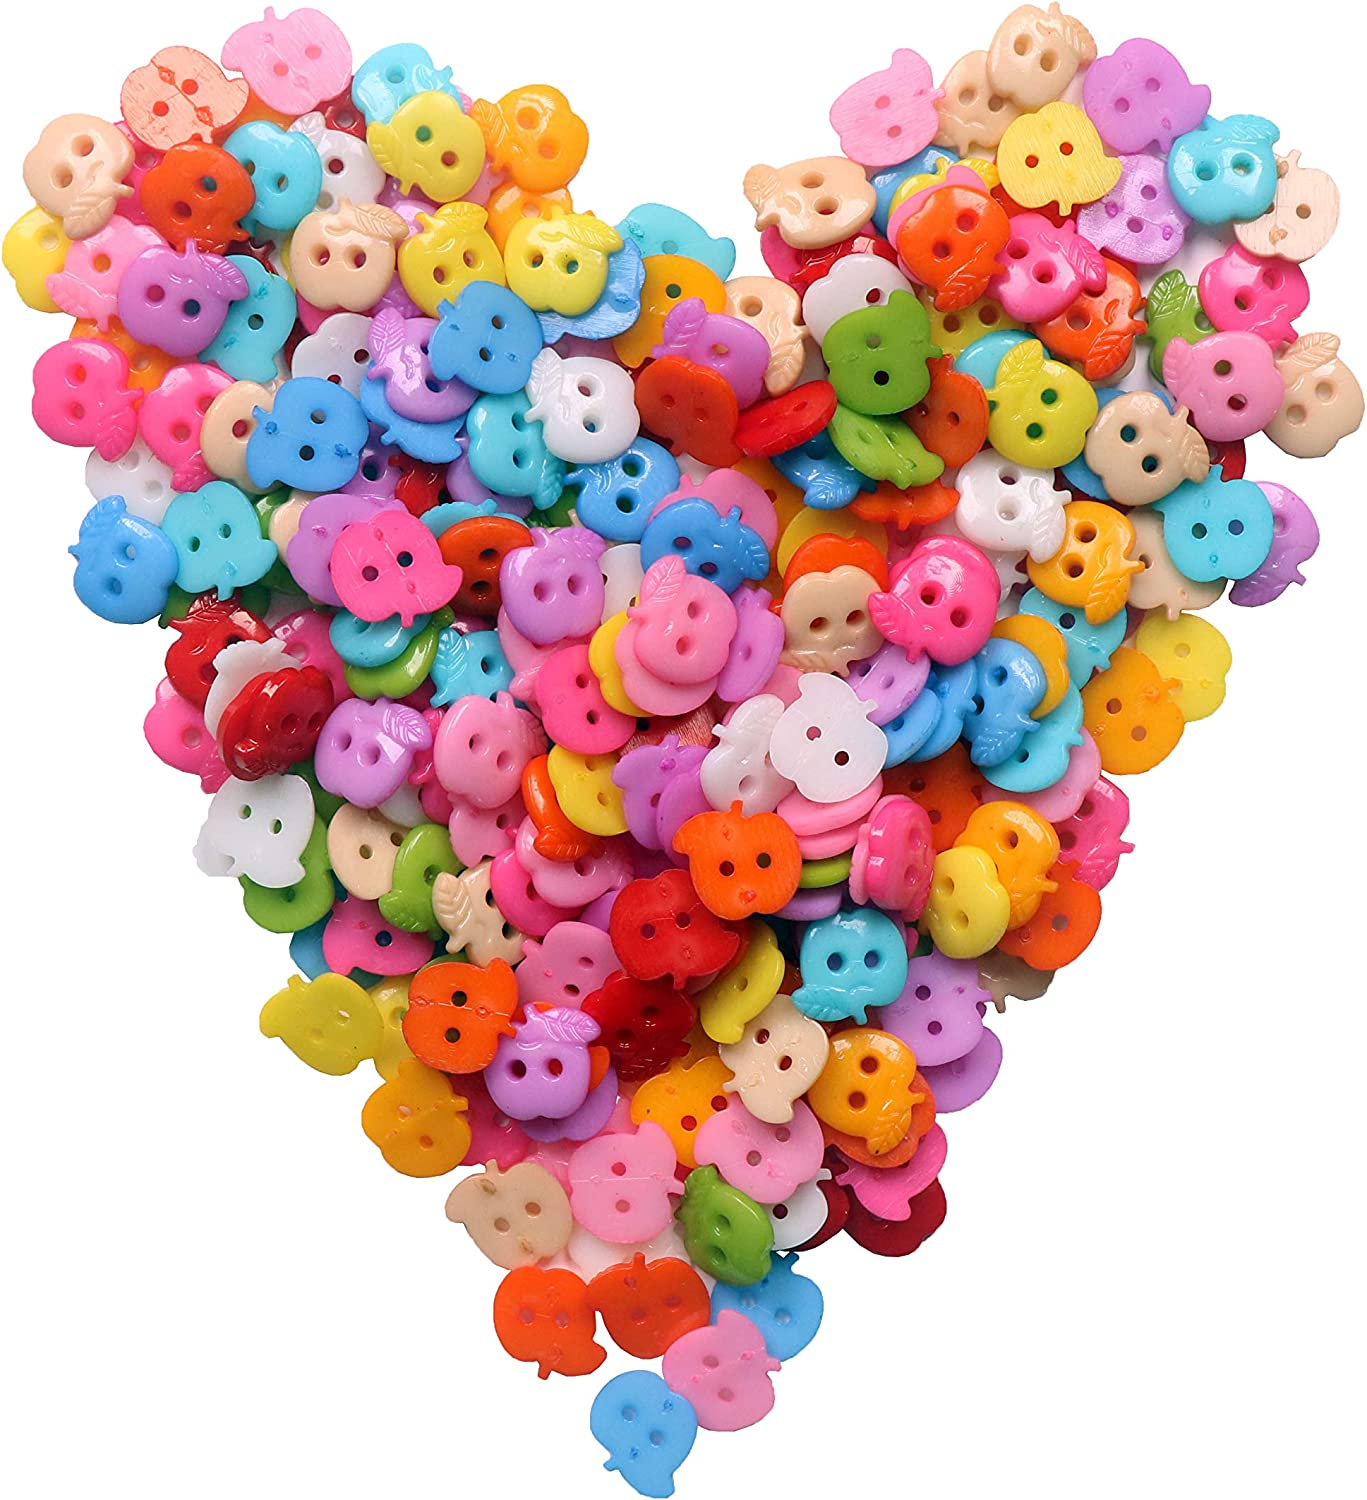 YAKA 50pcs Big Button Mix Fancy Round Plastics Button Overcoat 4 Holes Buttons DIY Craft Sewing Buttons for crafts1.2inch